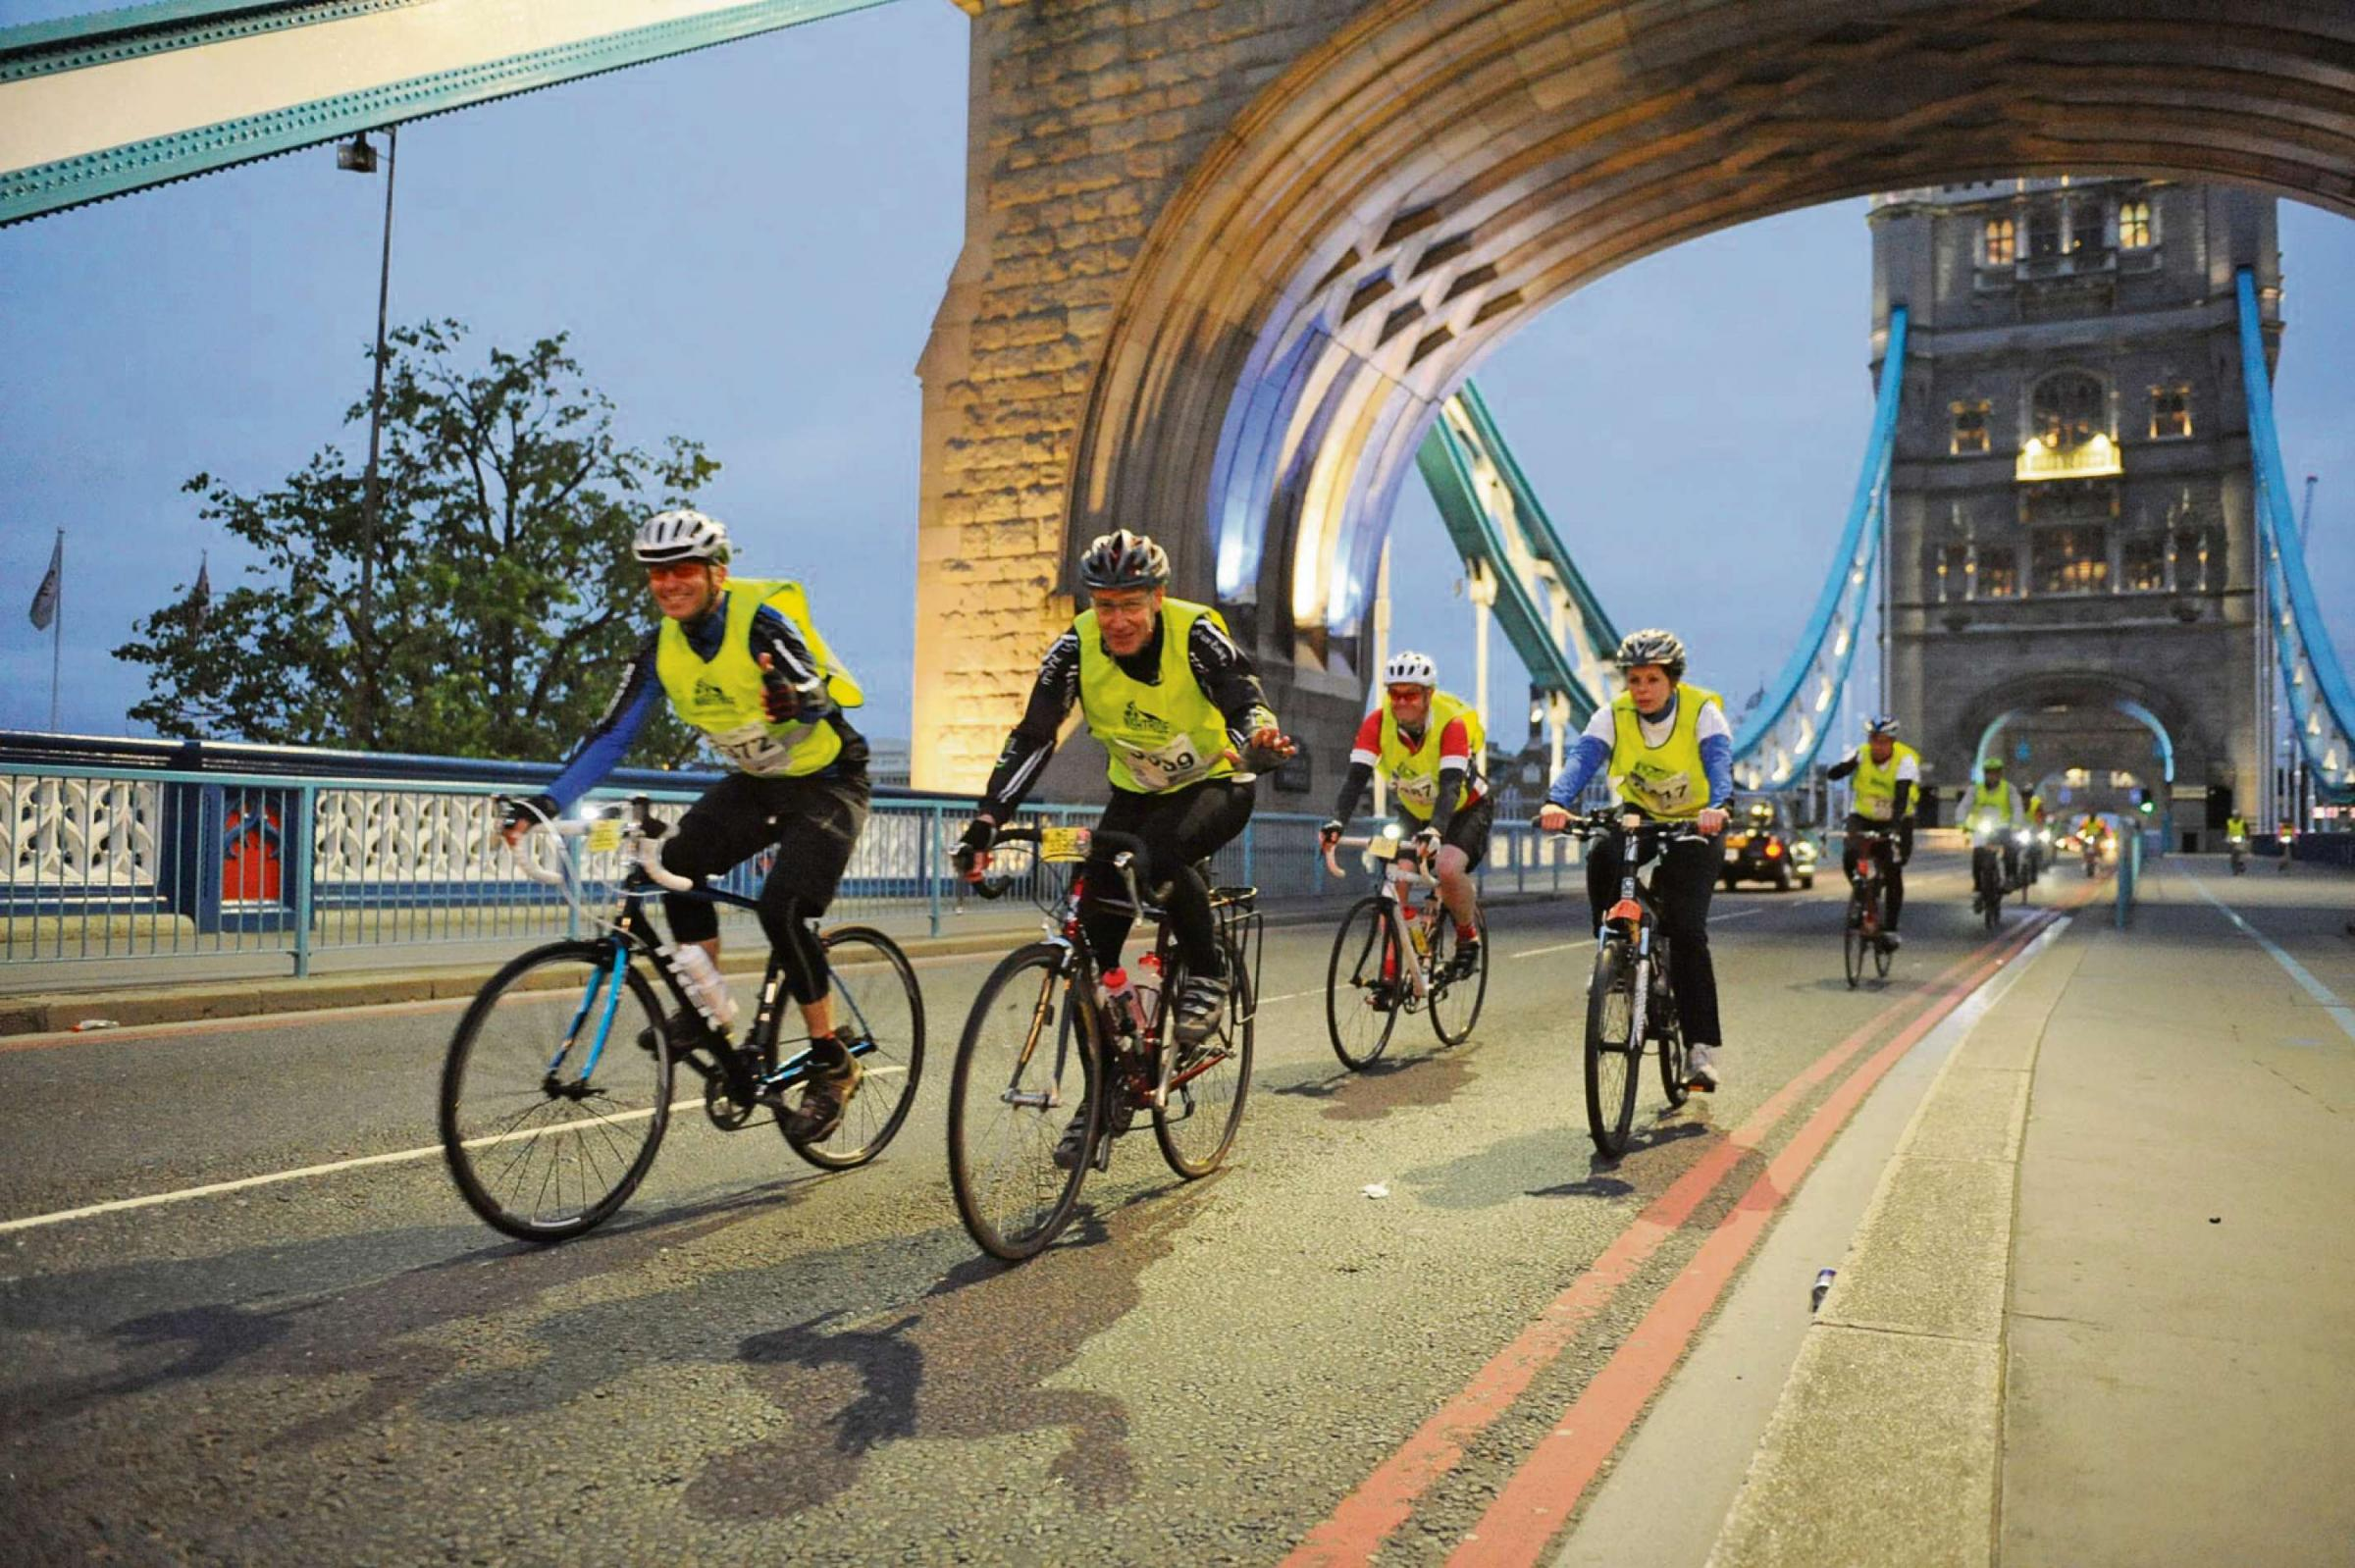 Cyclists taking part in last year's Nightrider on Tower Bridge.